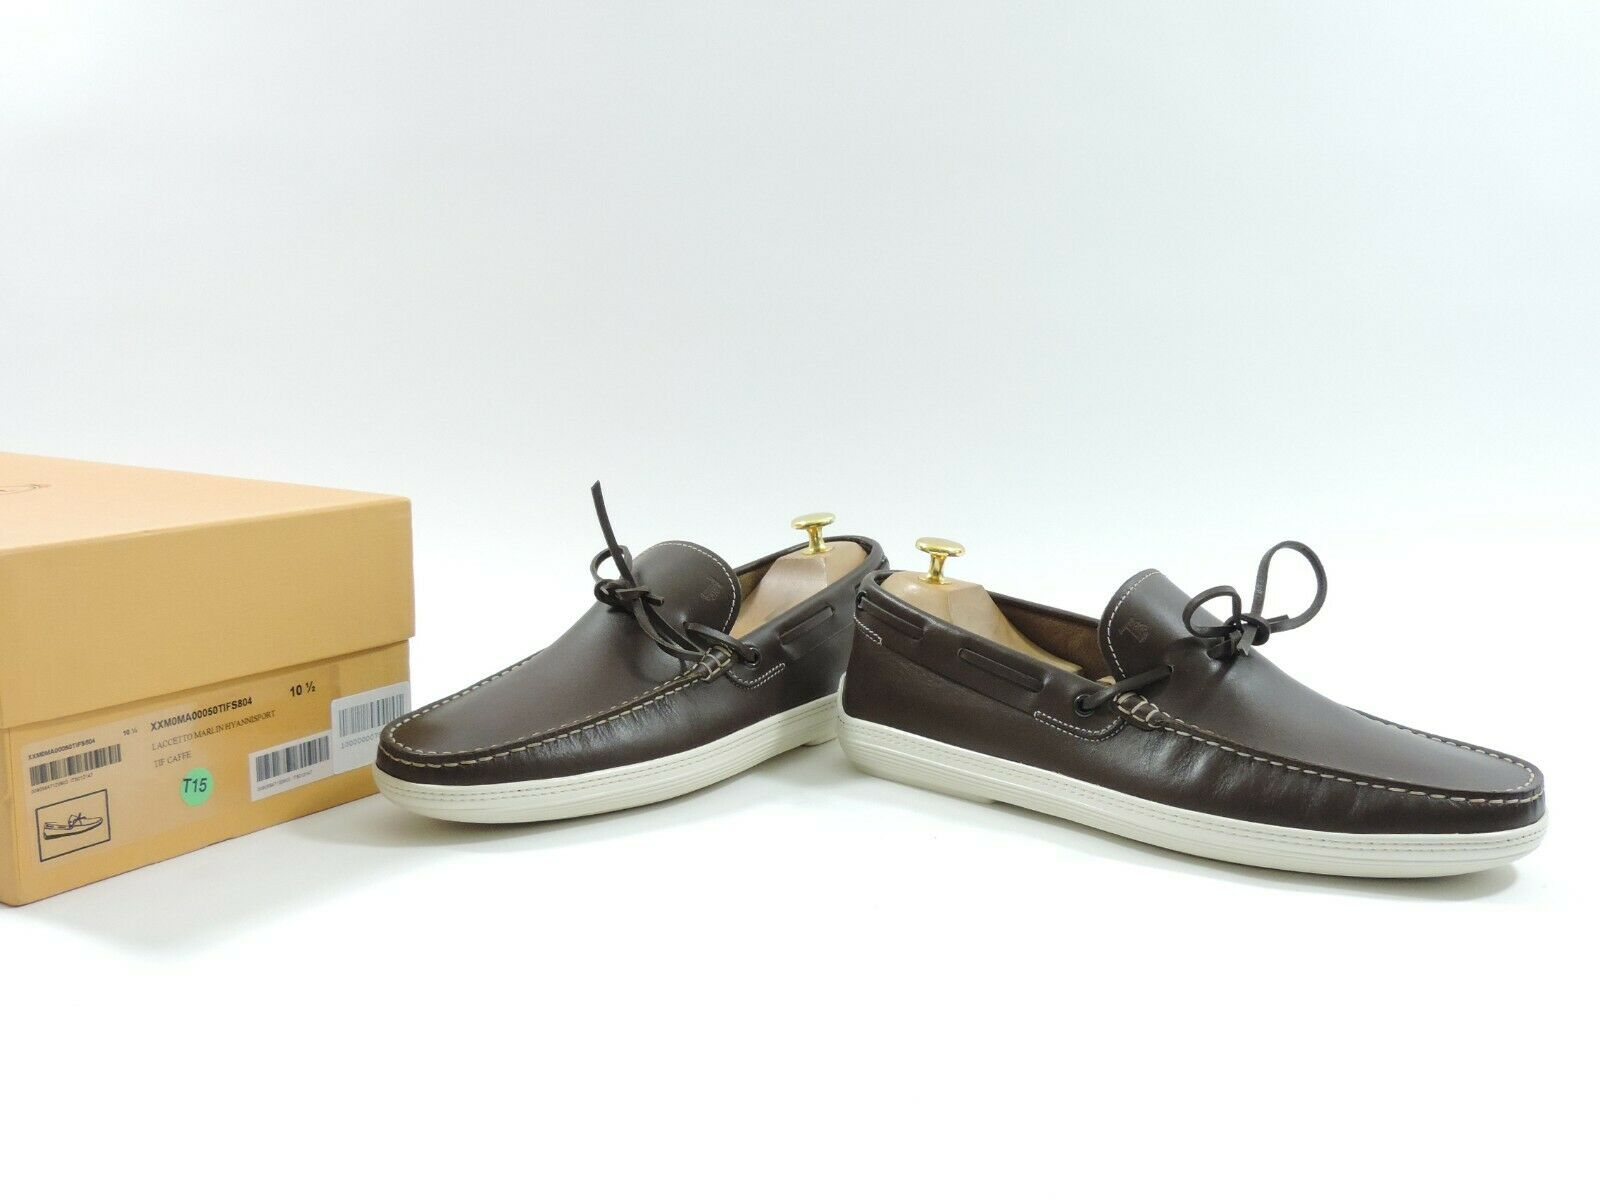 New Tods Loafers Gomino Drivers Penny Boat Deck UK 10.5 US 11.5 EU 44.5